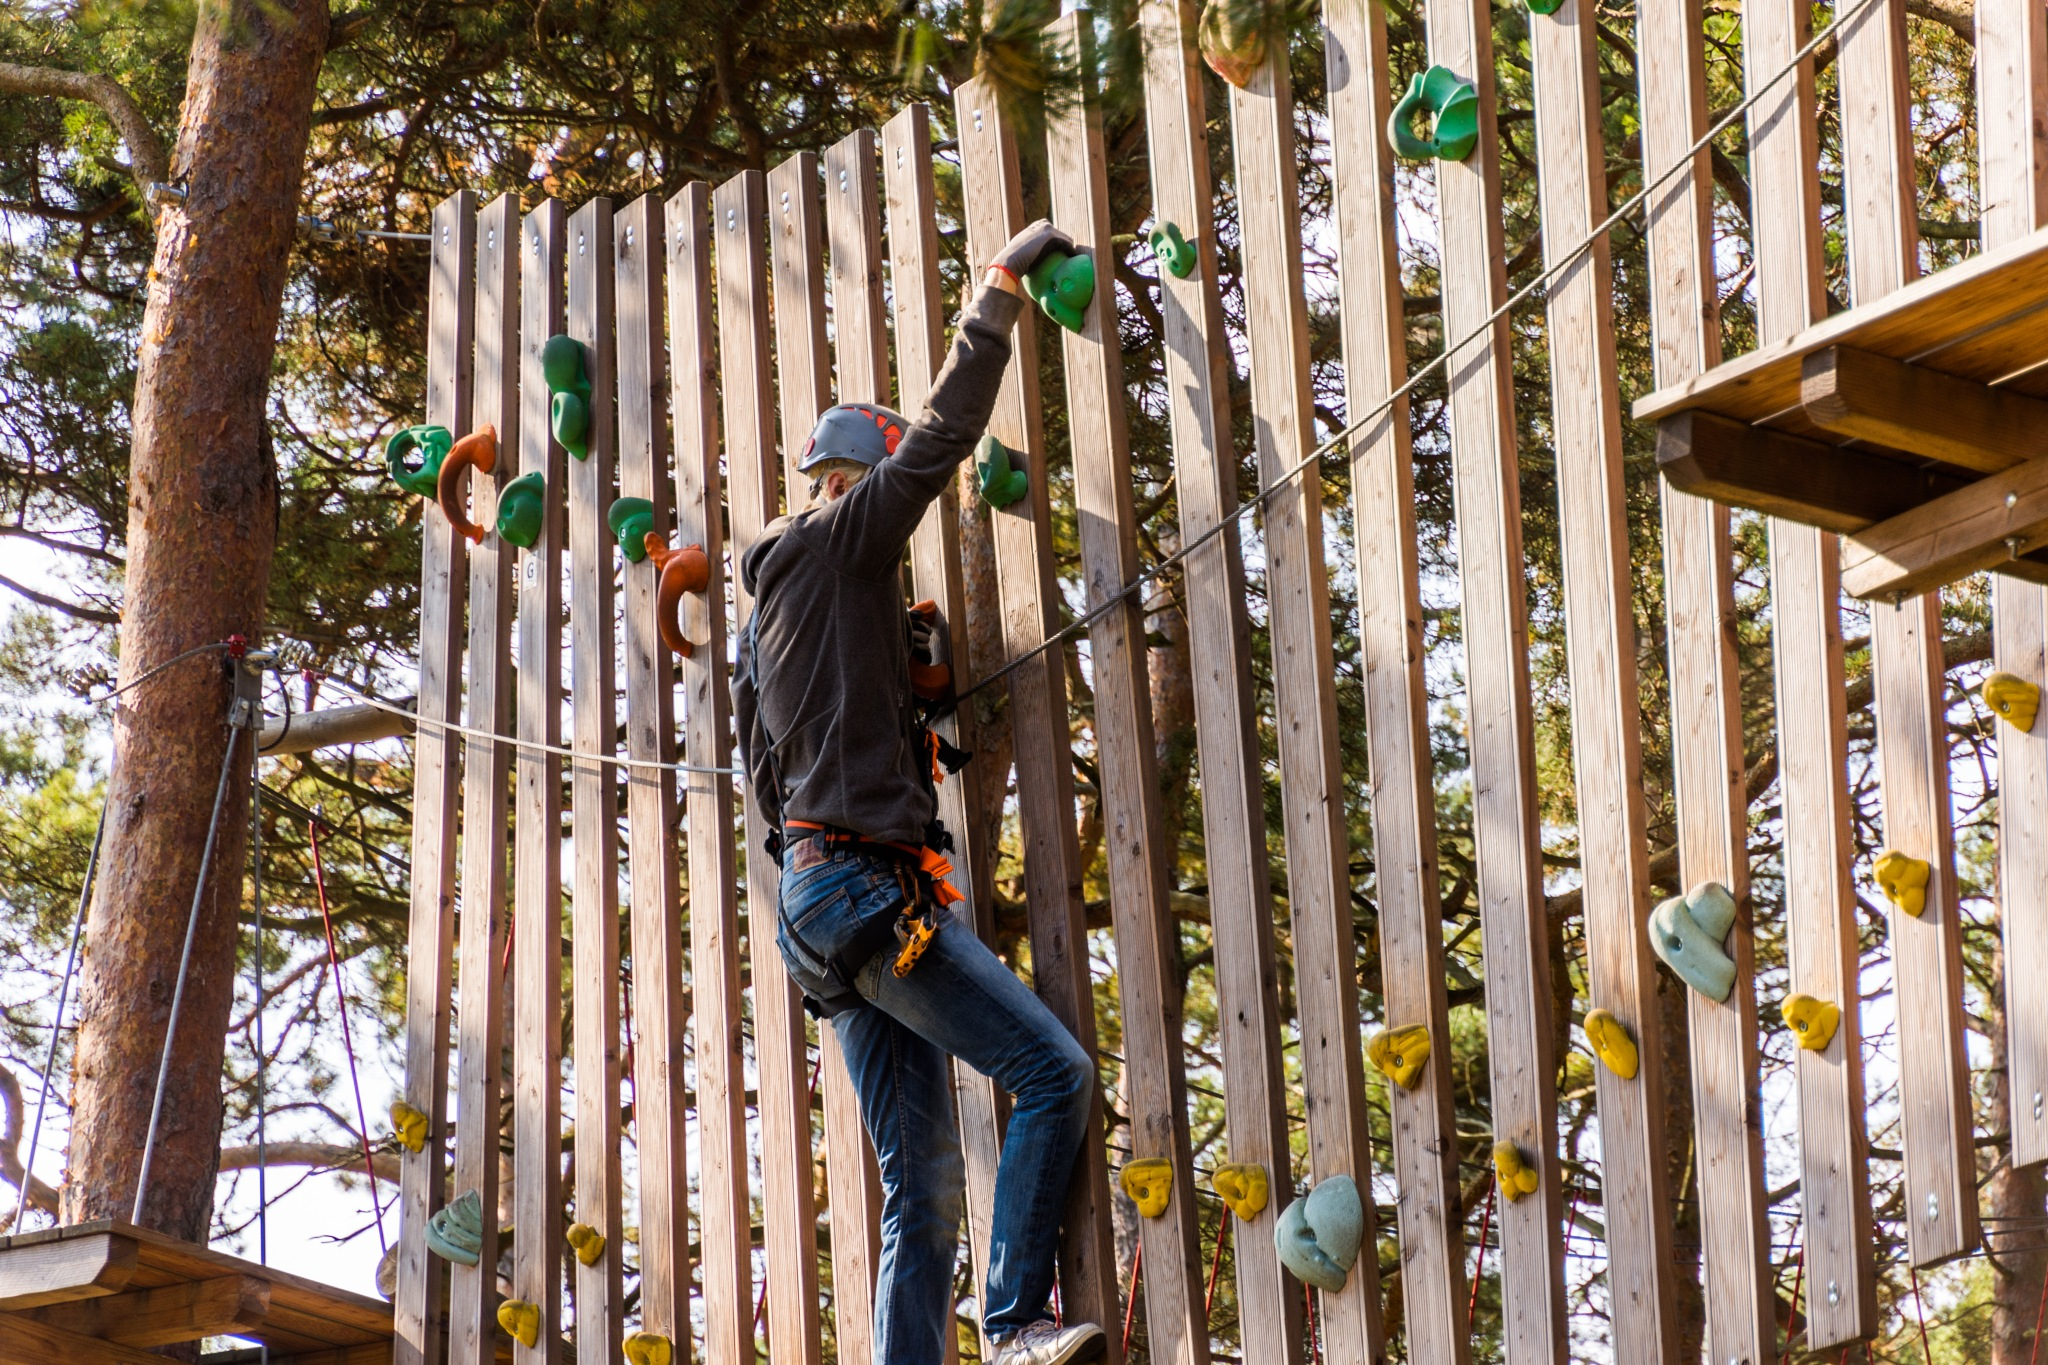 Climbing wall by Johnny Lythell